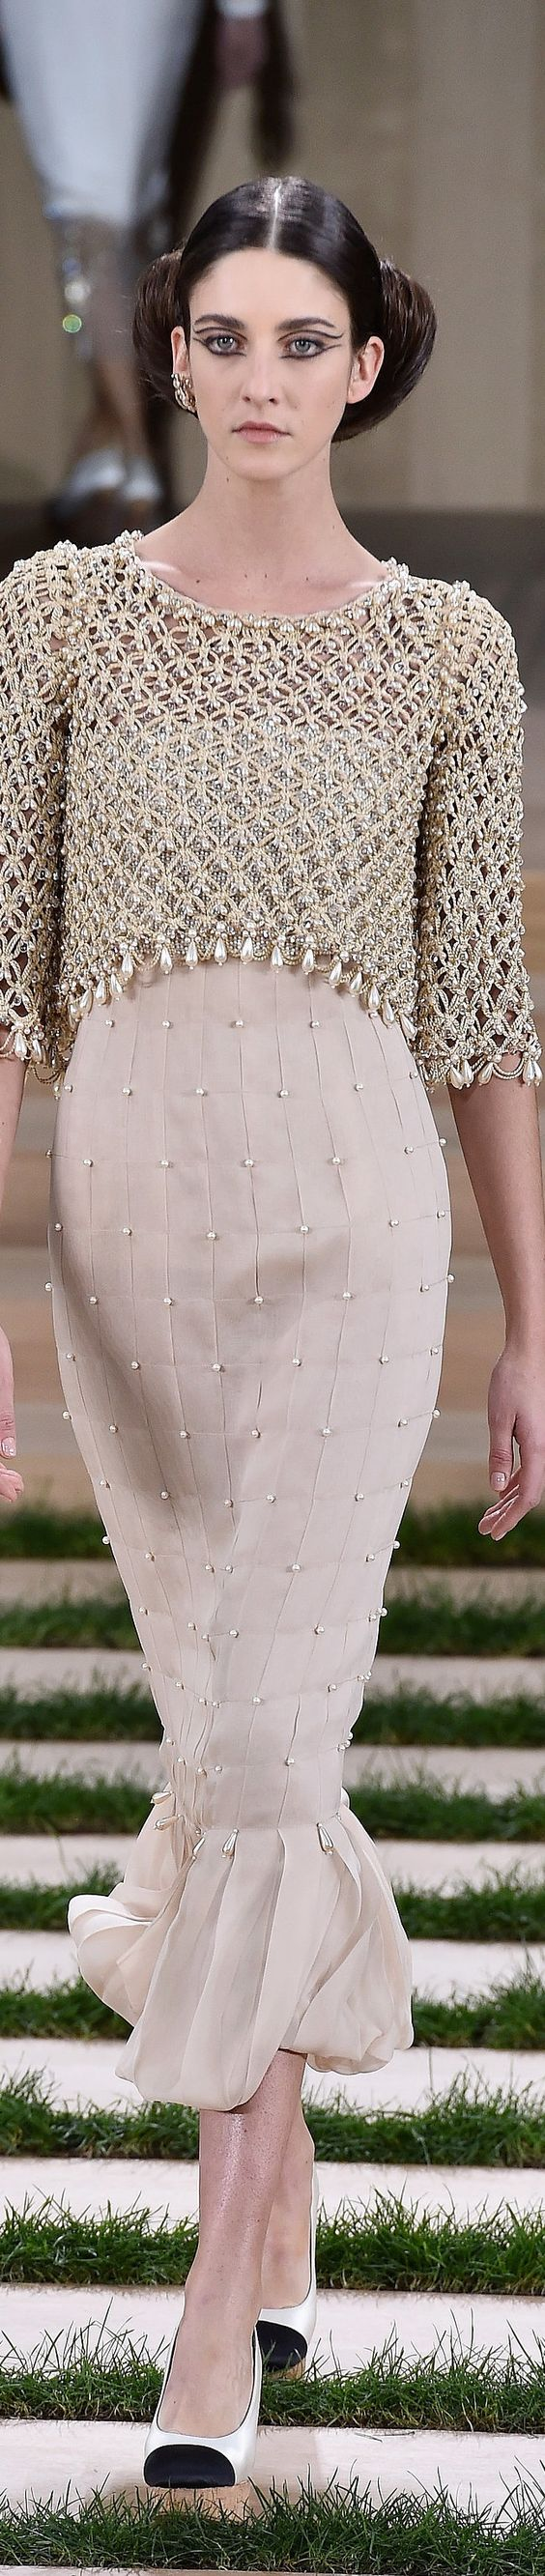 Chanel Spring 2016 Couture...Gorgeous embellishments.Cheaper to have custom-made than purchasing from salon.: